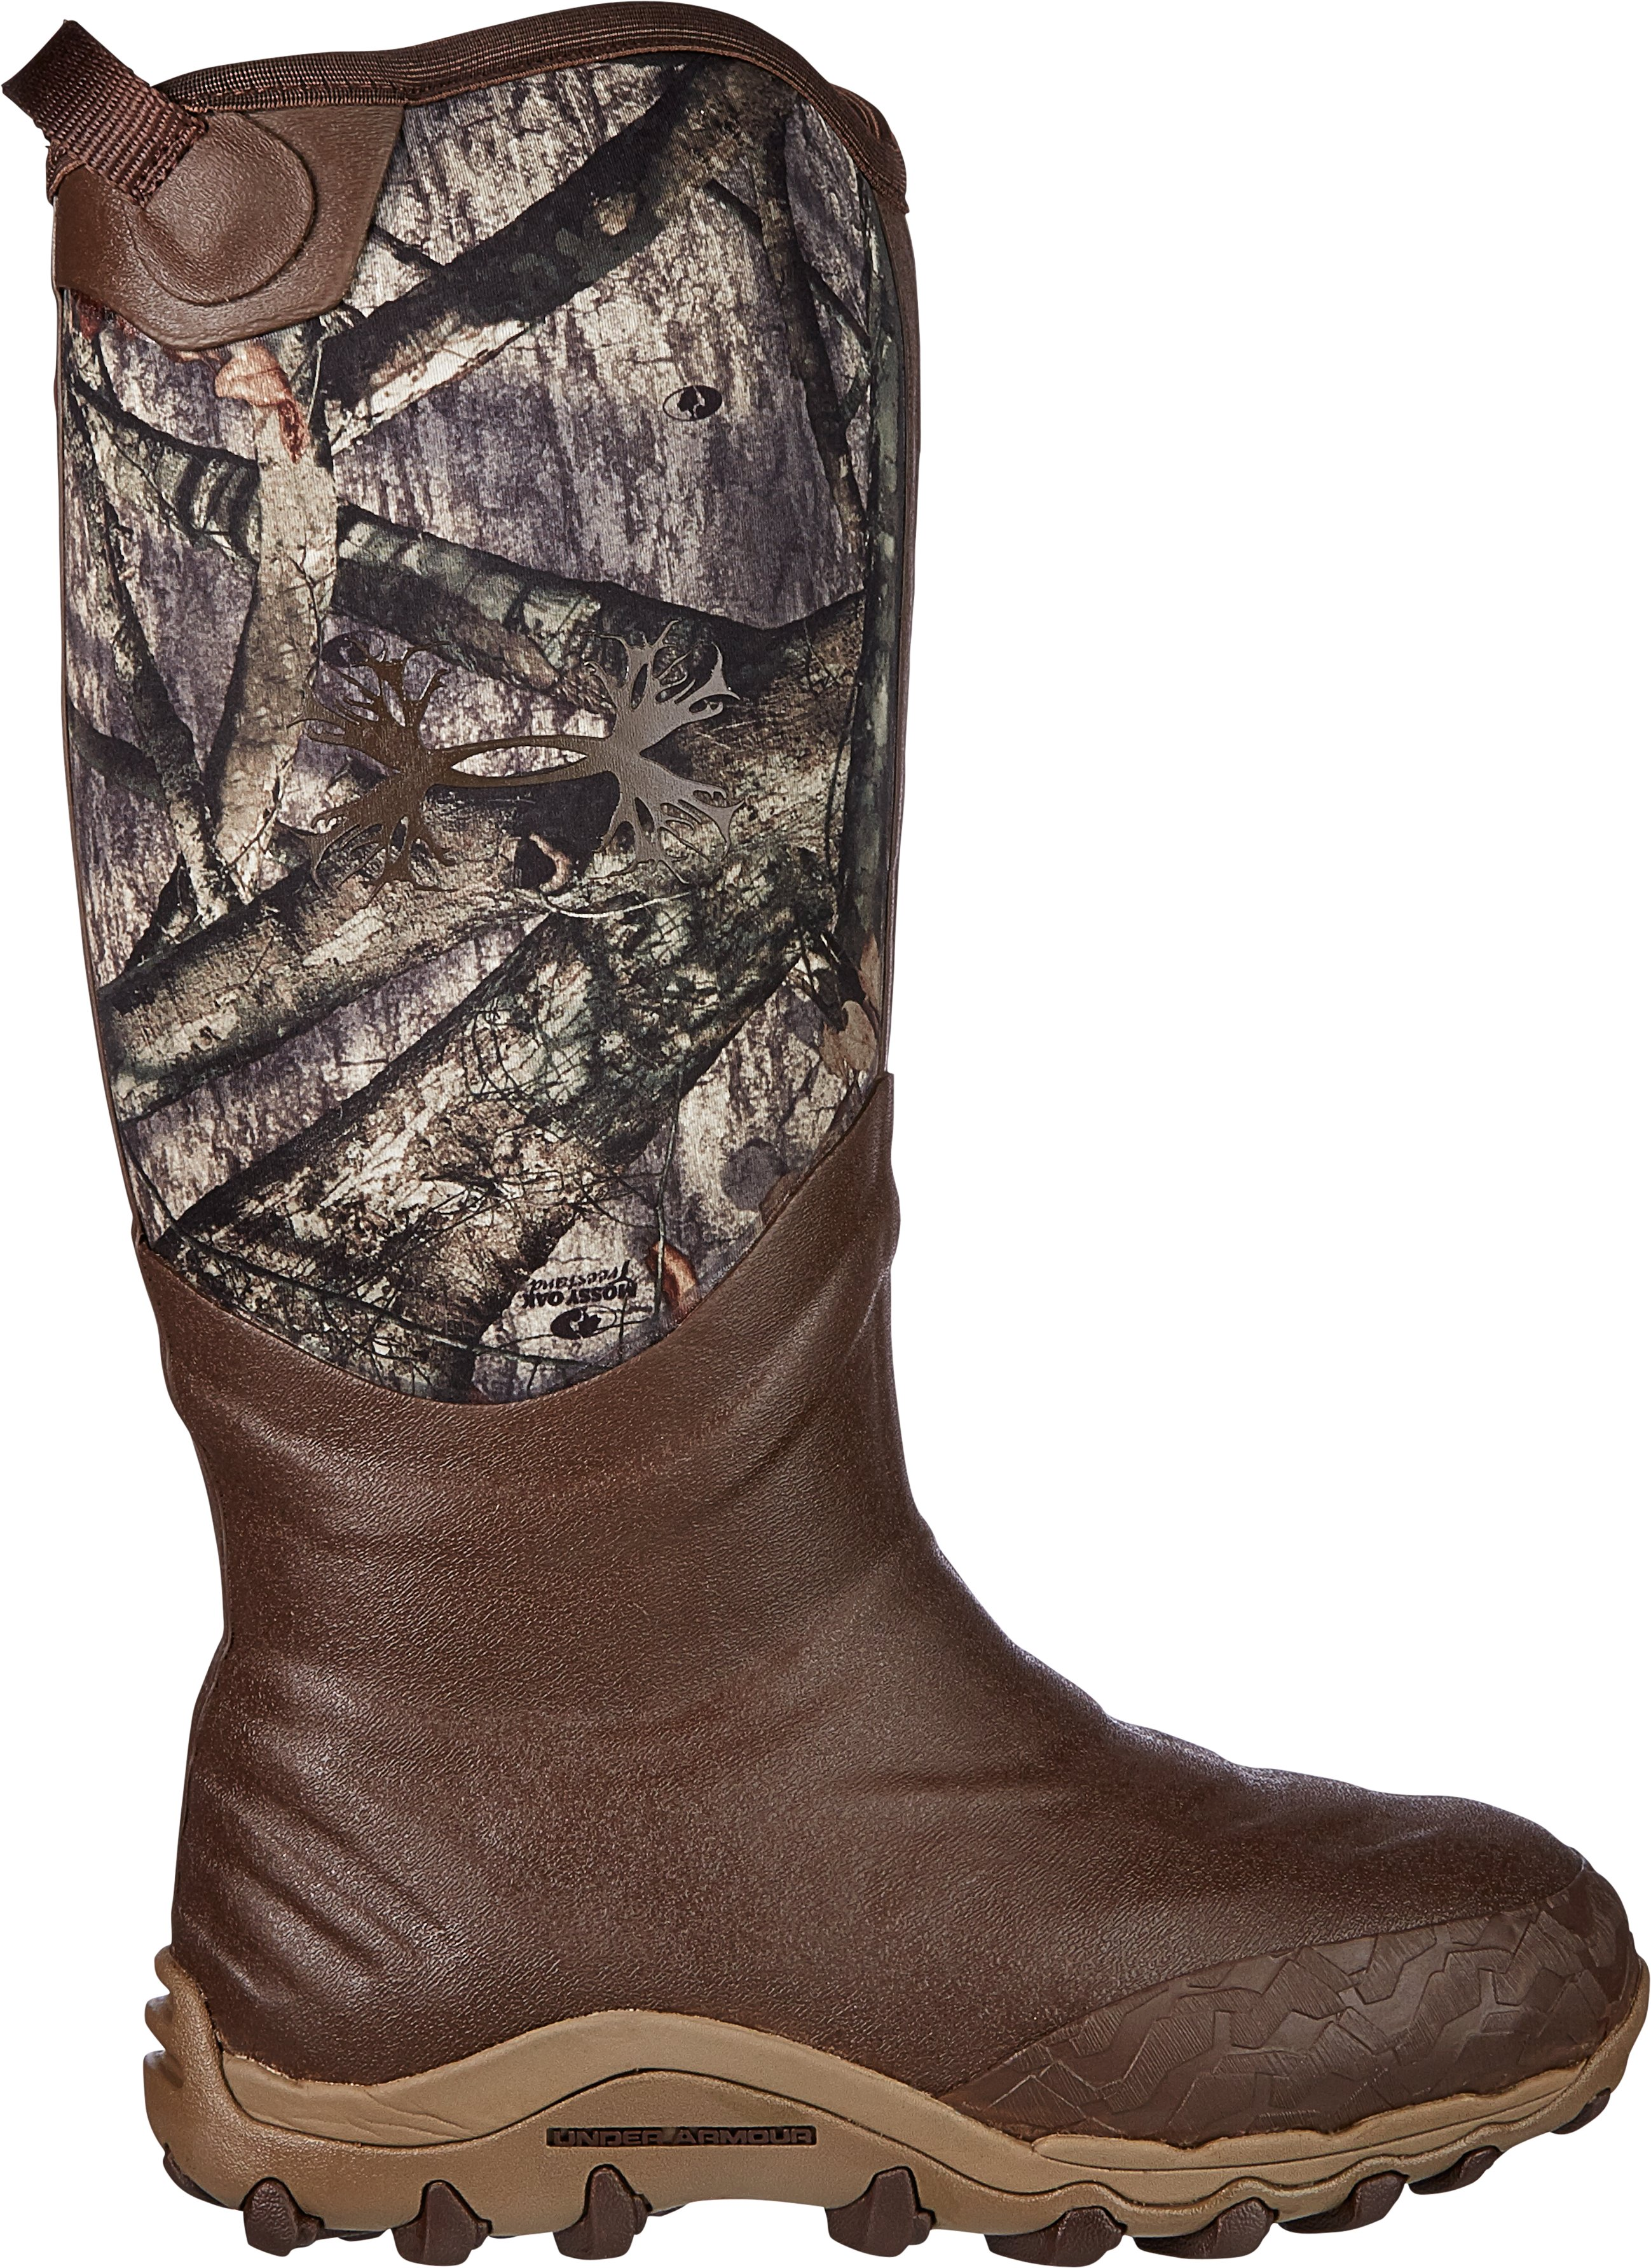 Men's UA H.A.W. 800g Hunting Boots, Mossy Oak Treestand, zoomed image